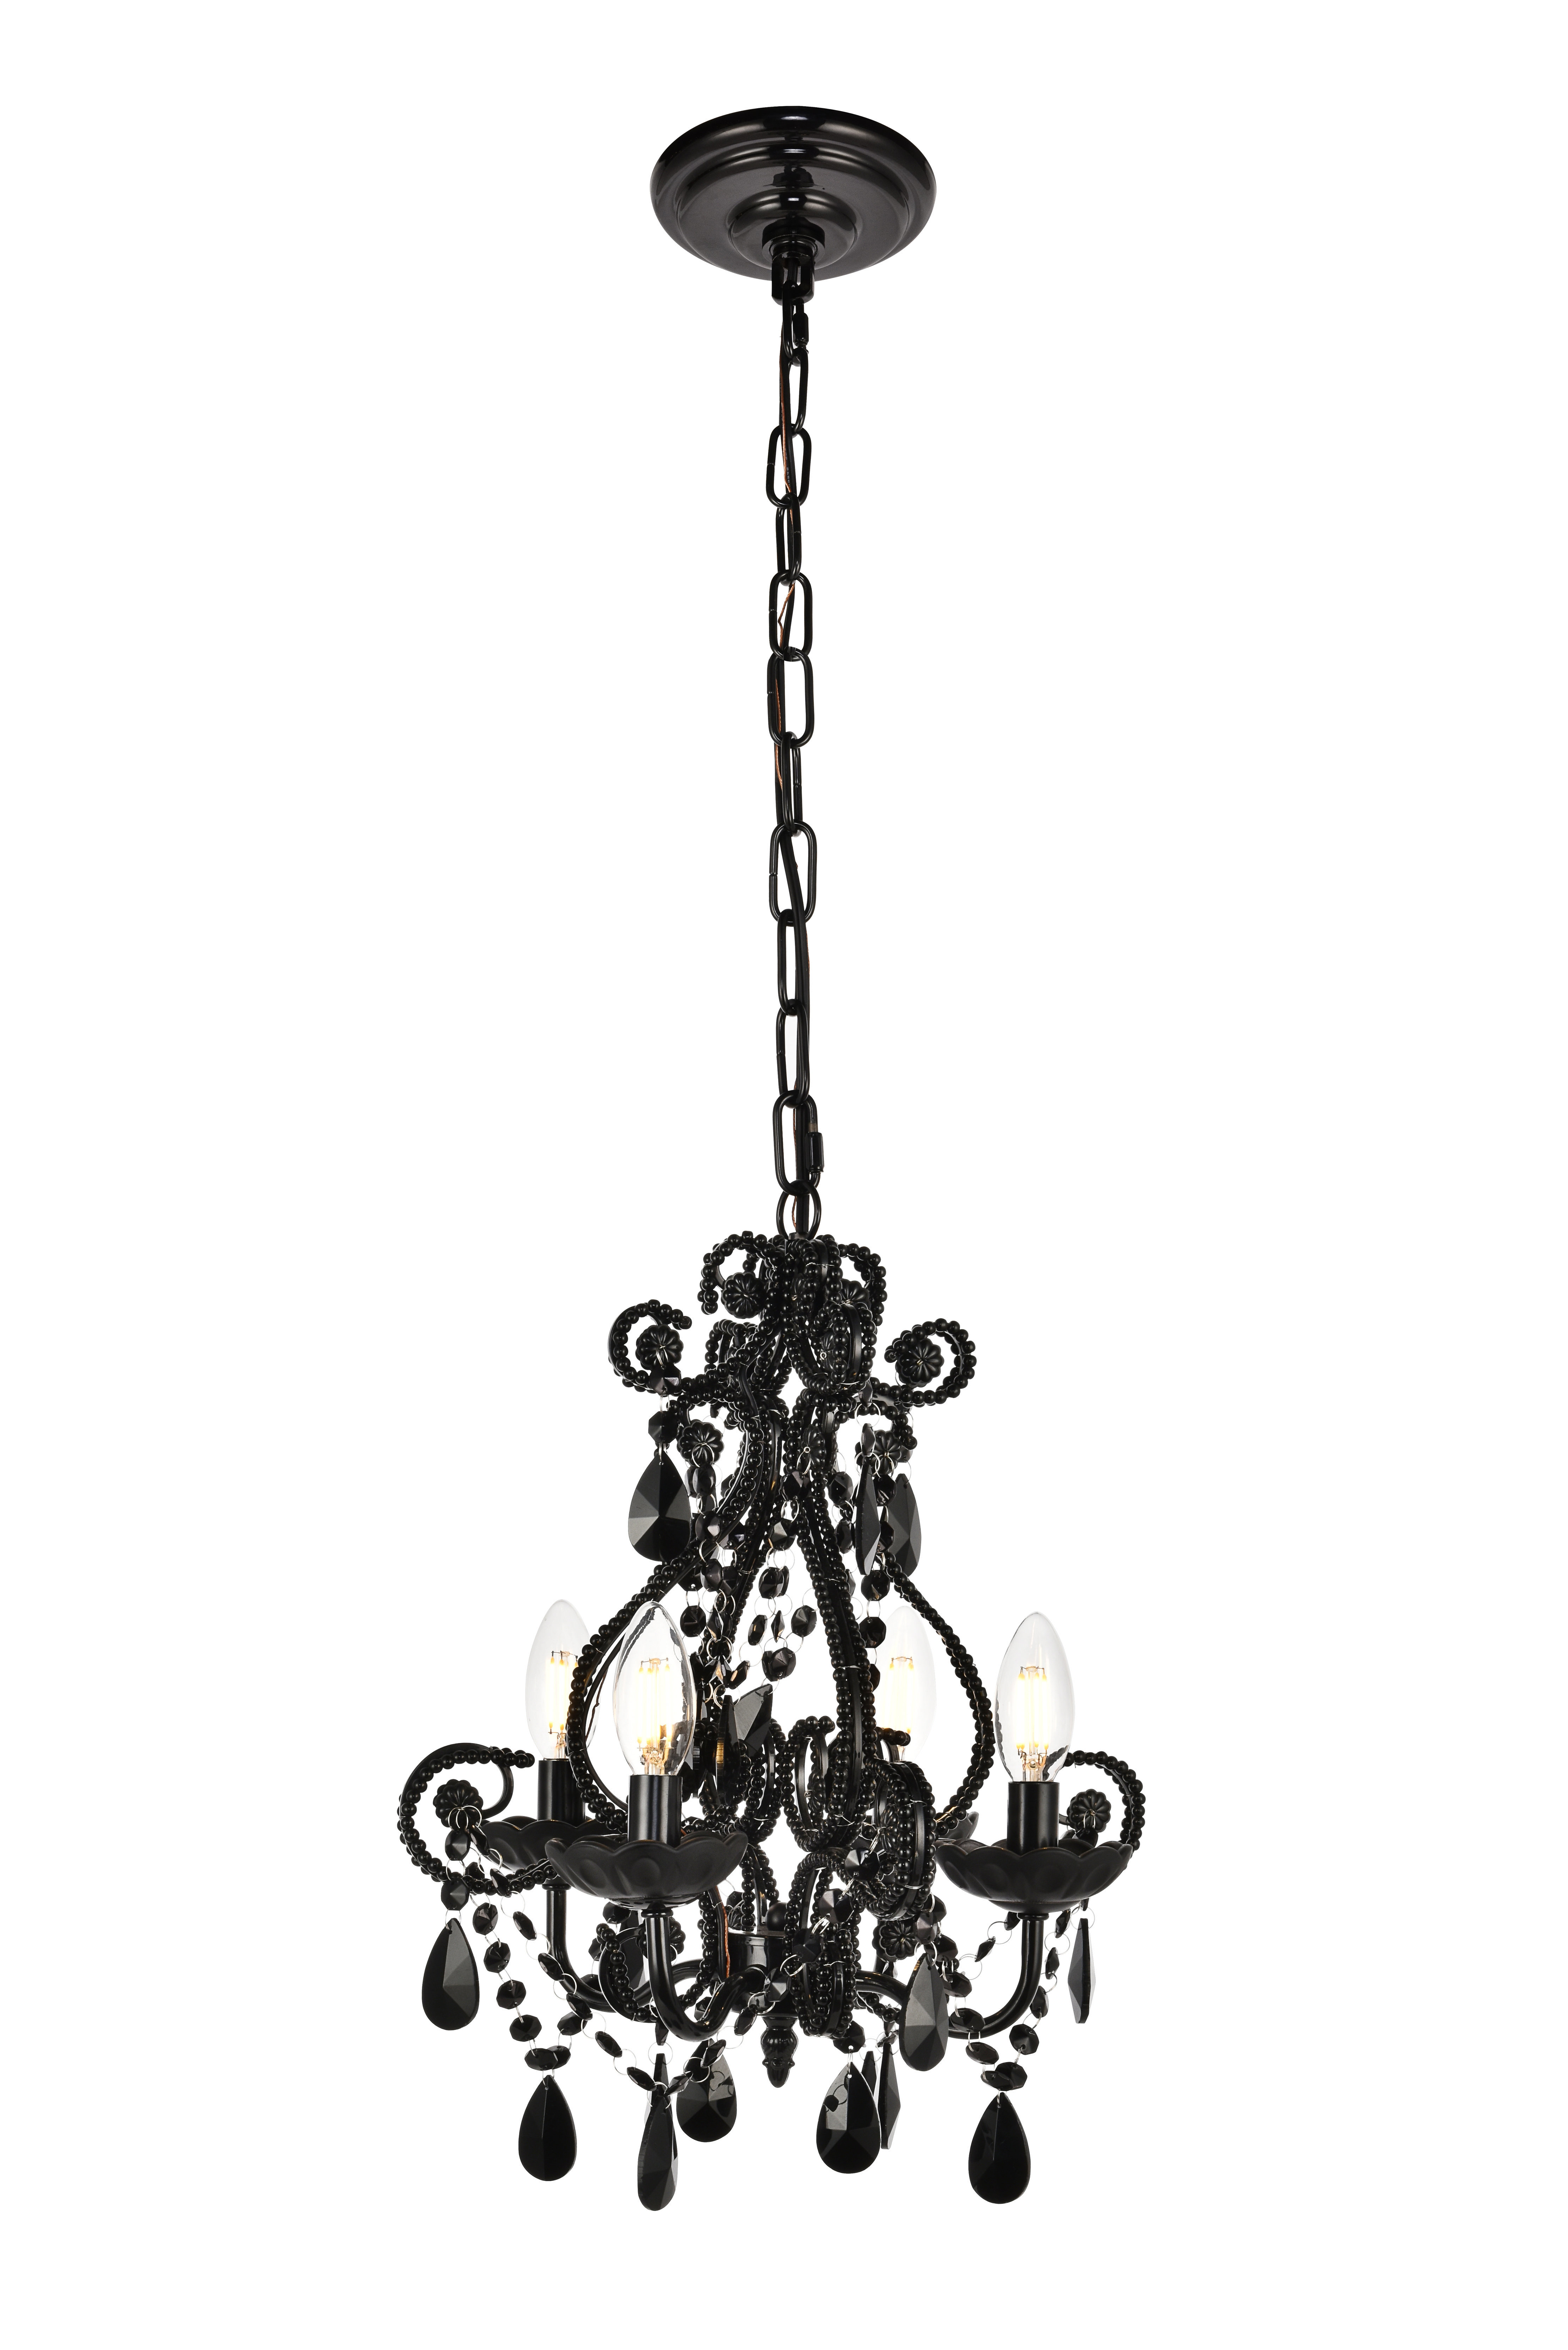 Newest Aldora 4-Light Candle Style Chandeliers inside Burcott 4-Light Candle Style Chandelier